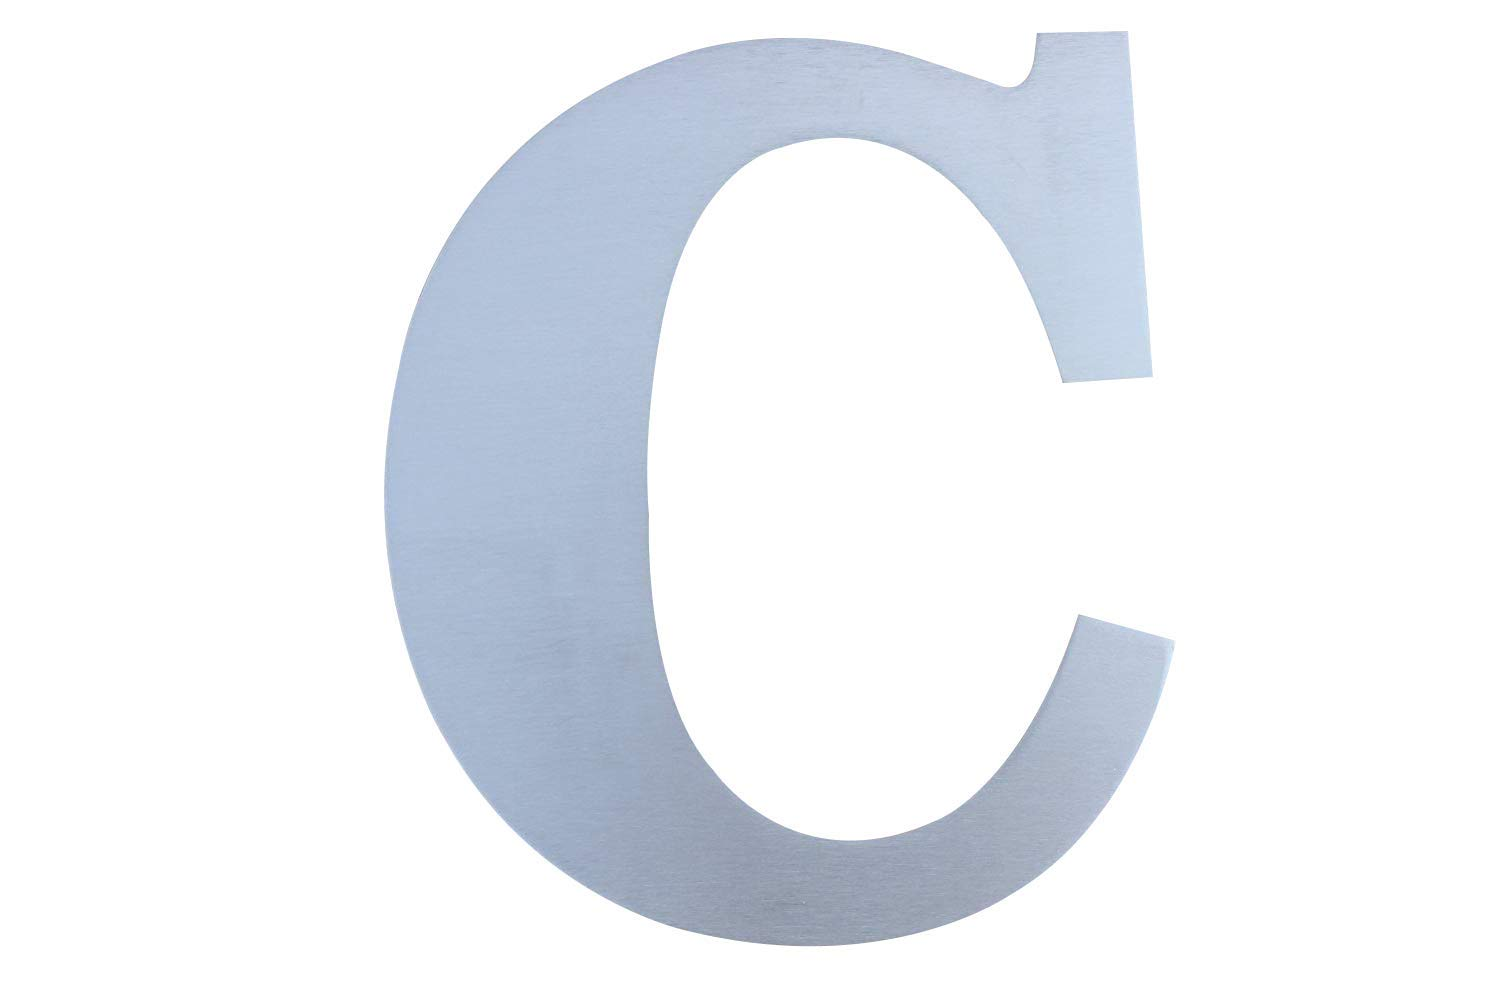 Fly Mida 10inch- House Number-304 Brushed Stainless Steel,Floating Appearance and Easy to Install (Letter-C)